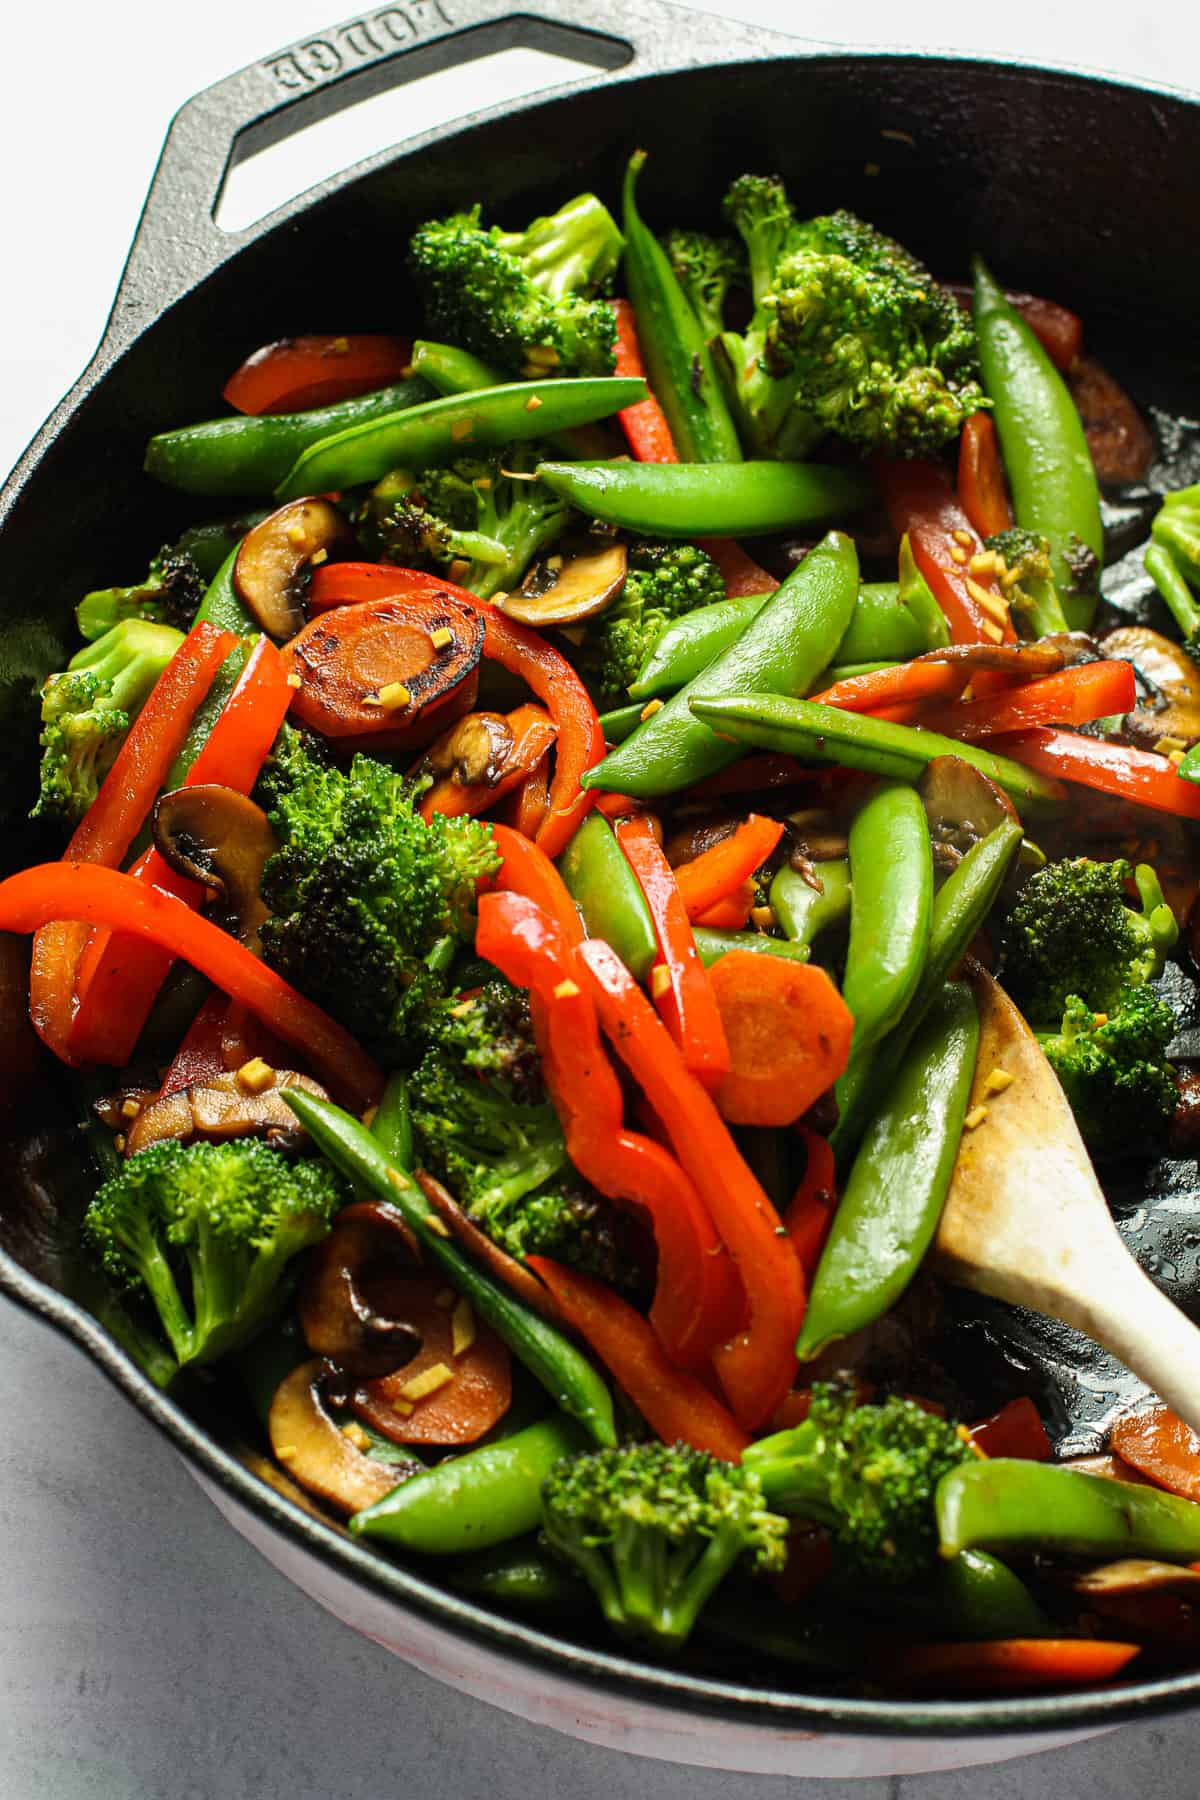 Easy Stir Fry Veggies